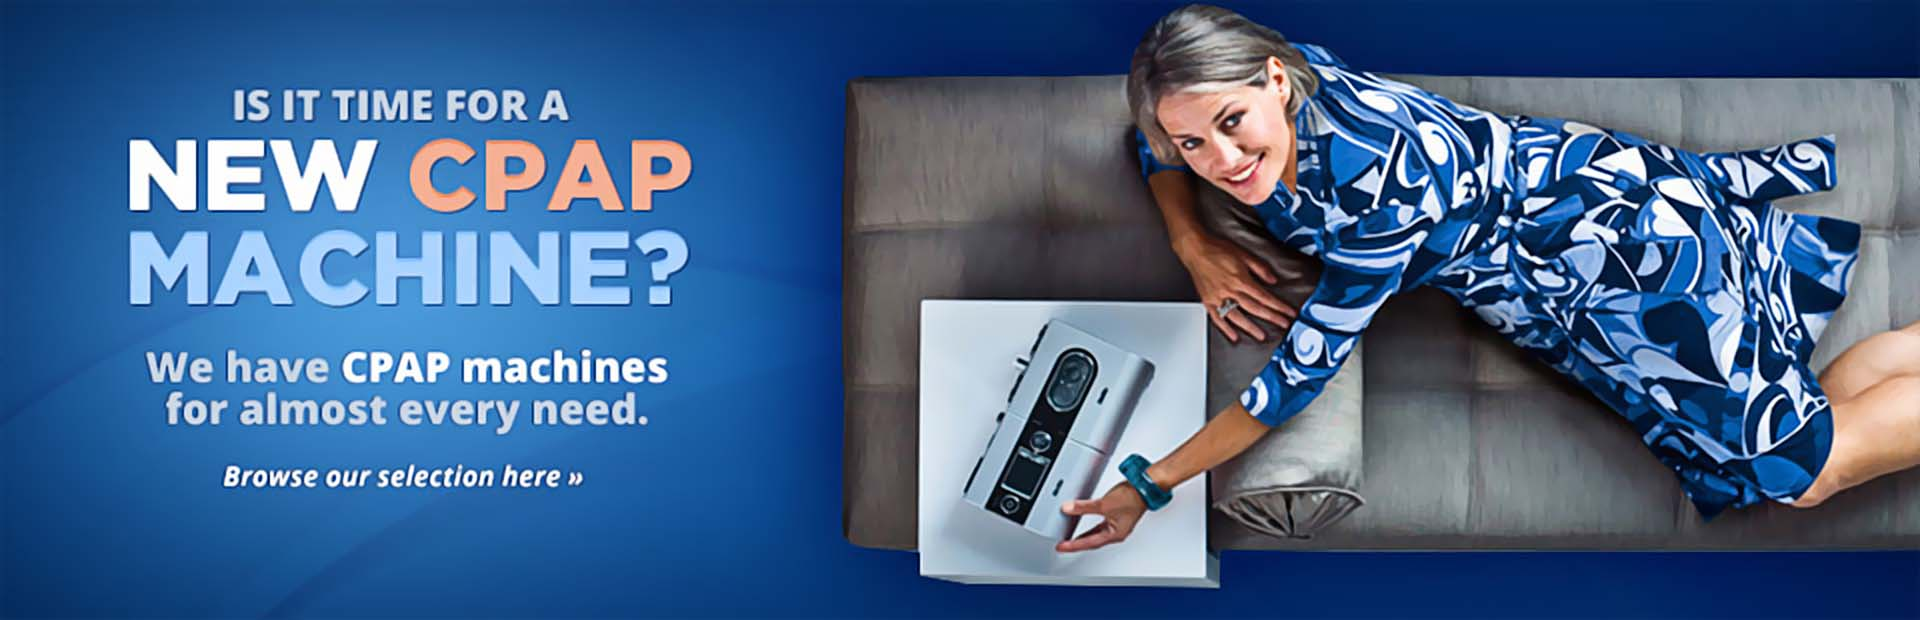 We have CPAP machines for almost every need. Click here to browse our selection.